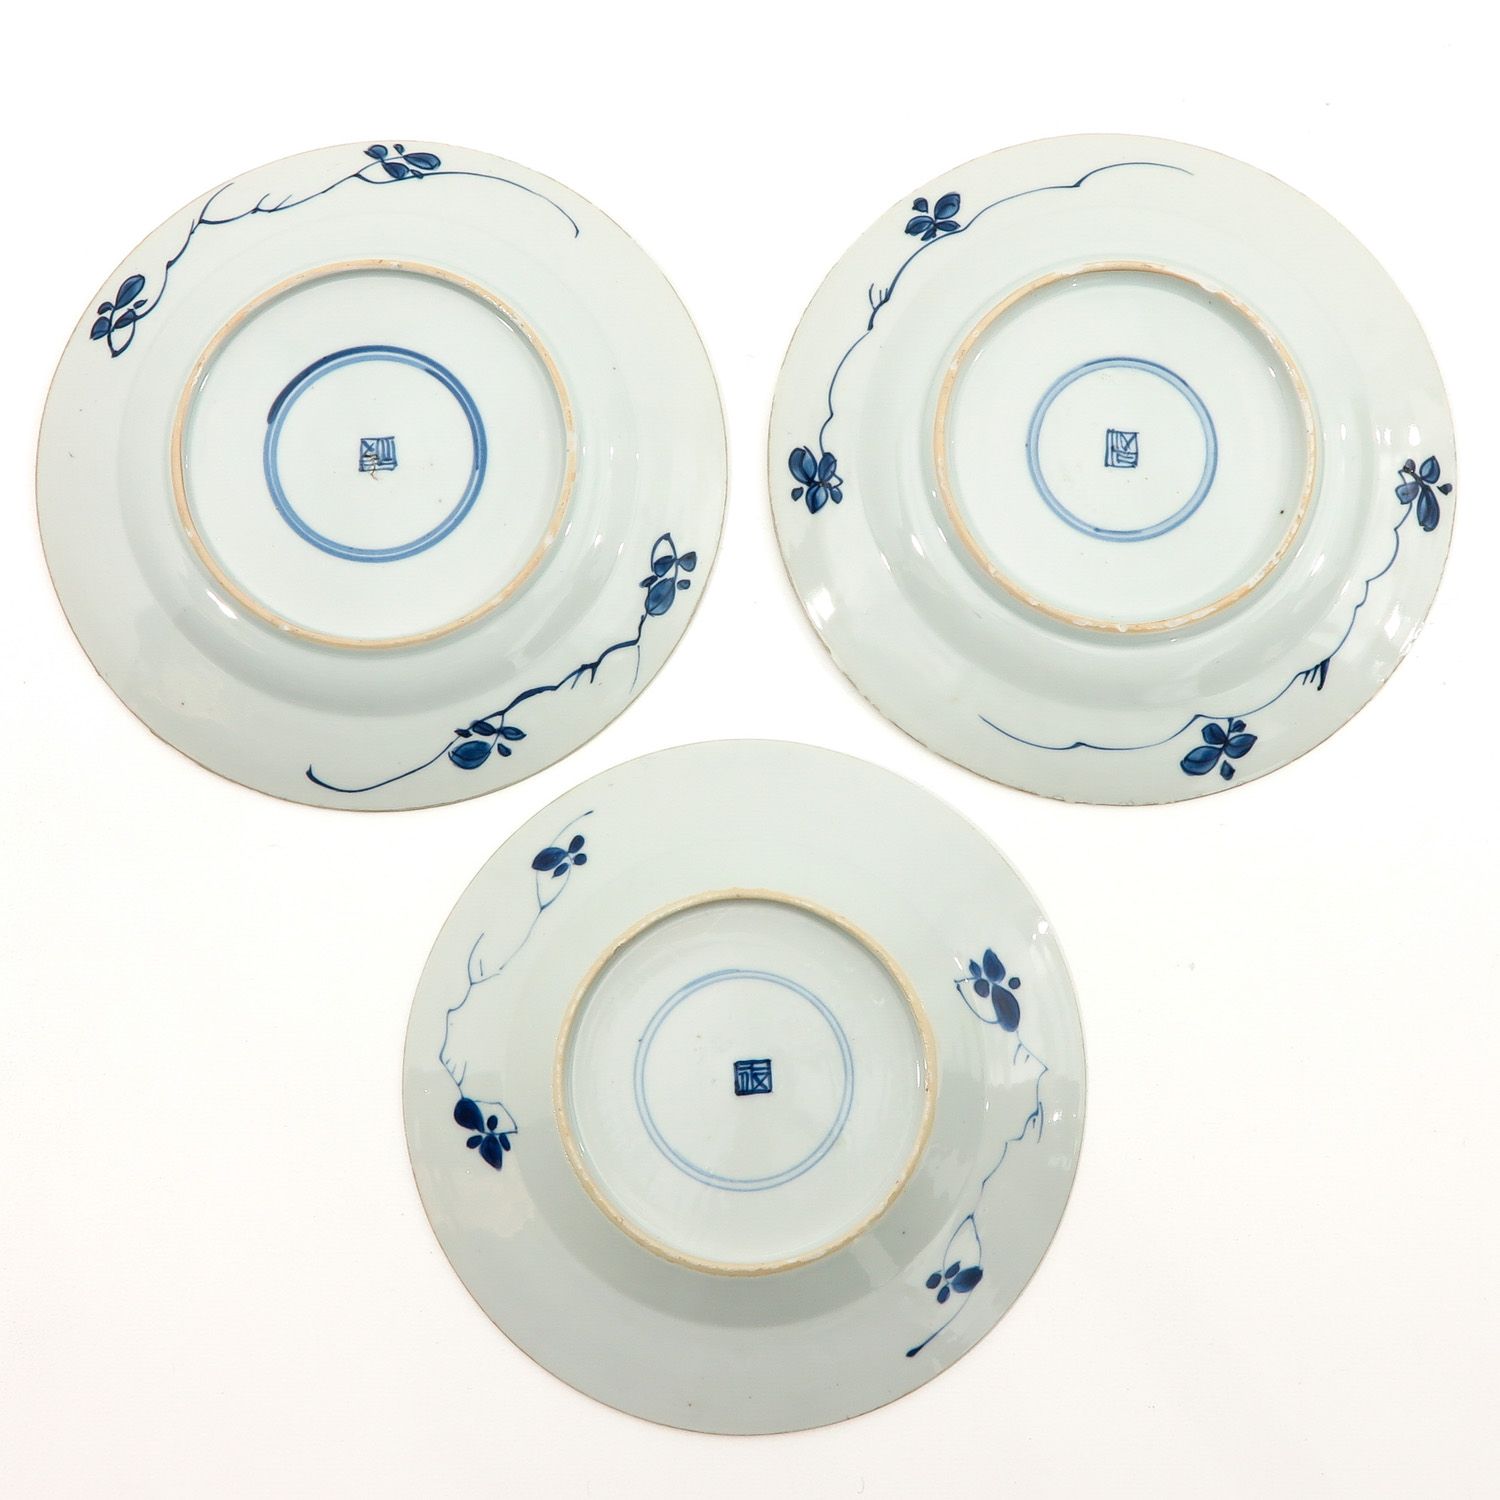 A Lot of 3 Blue and White Plates - Image 2 of 10